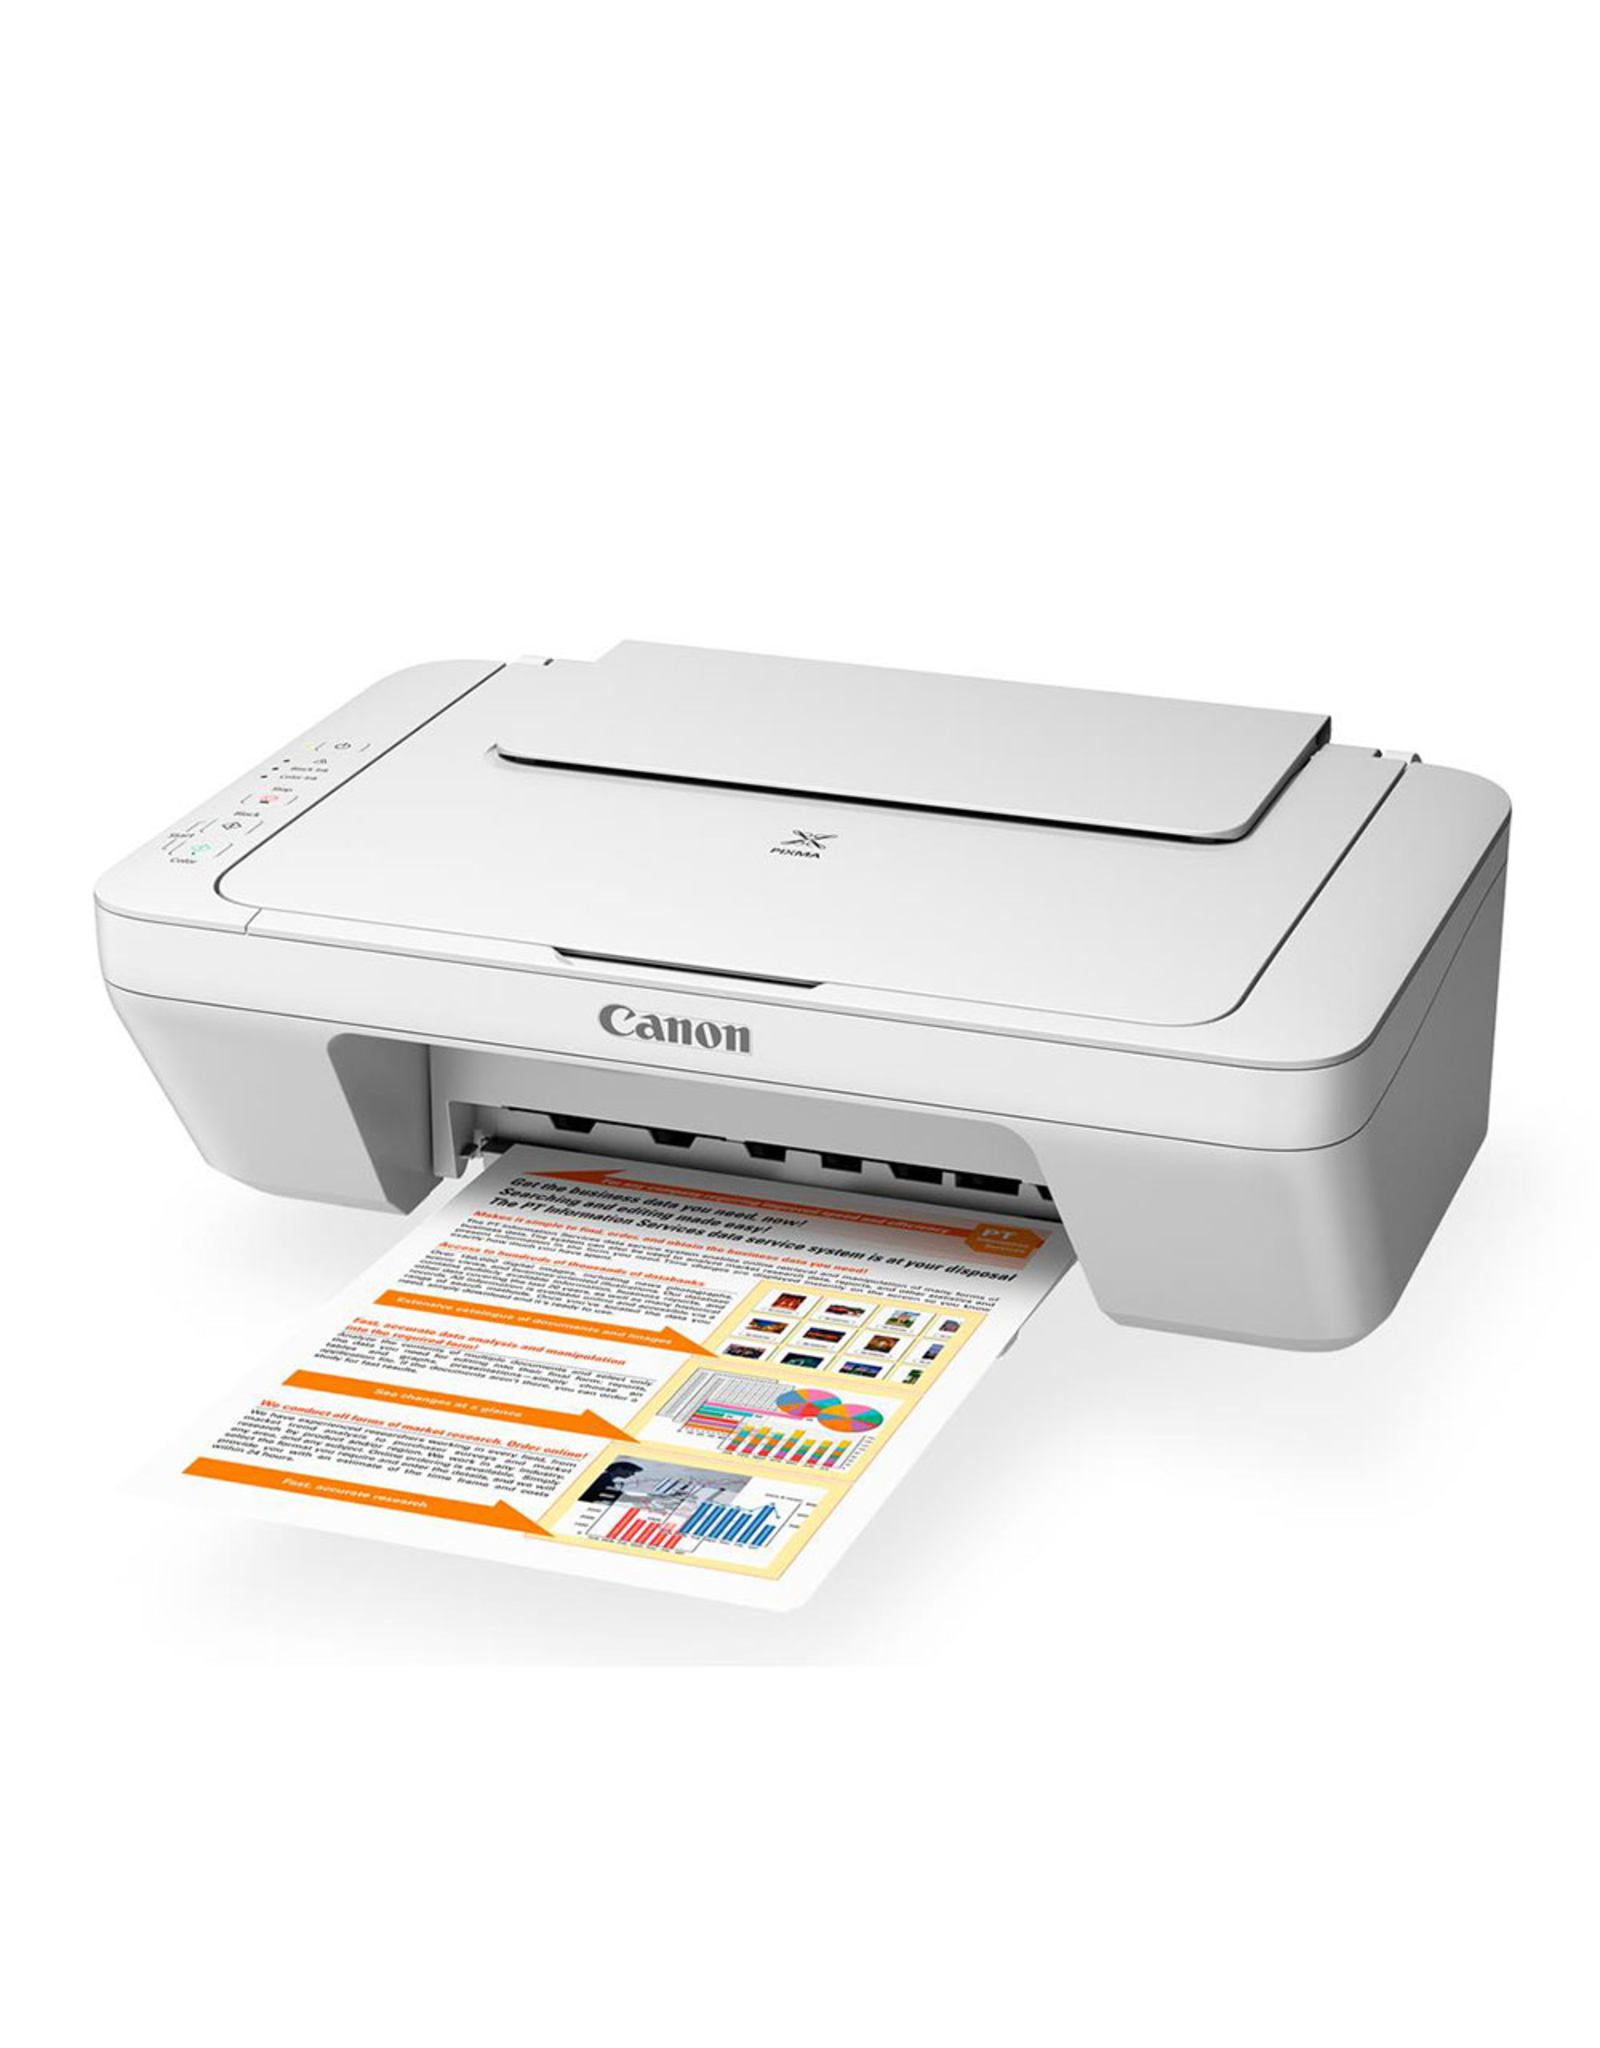 Canon Canon Pixma MG2560BK All-in-One Home Print/Copy/Scan USB